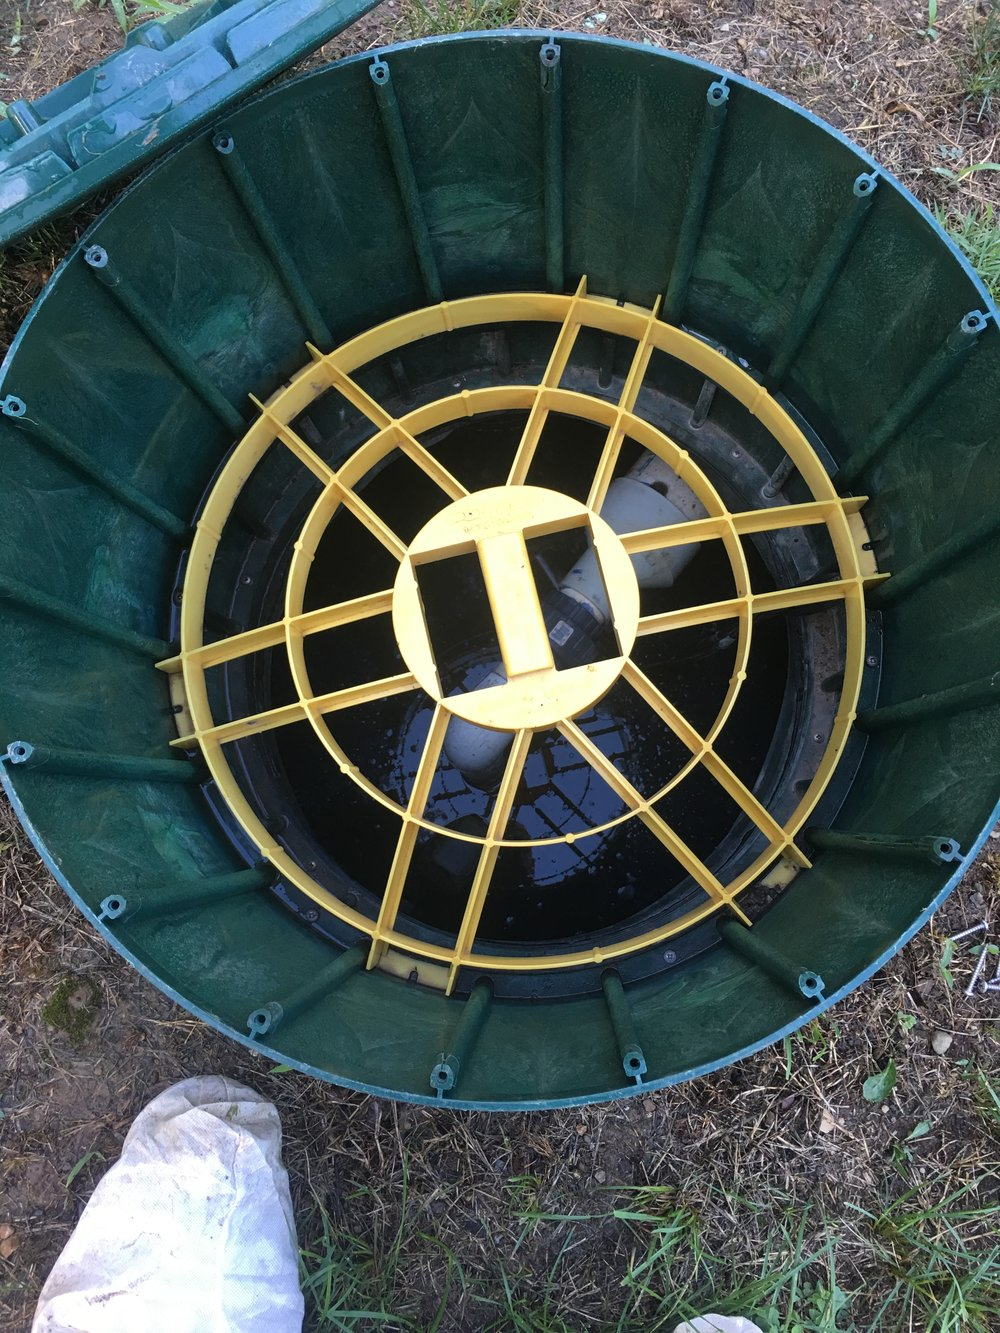 The Riser installed on this Septic System has a secondary safety device installed to prevent people or even animals from accidentally entering the Septic Tank -